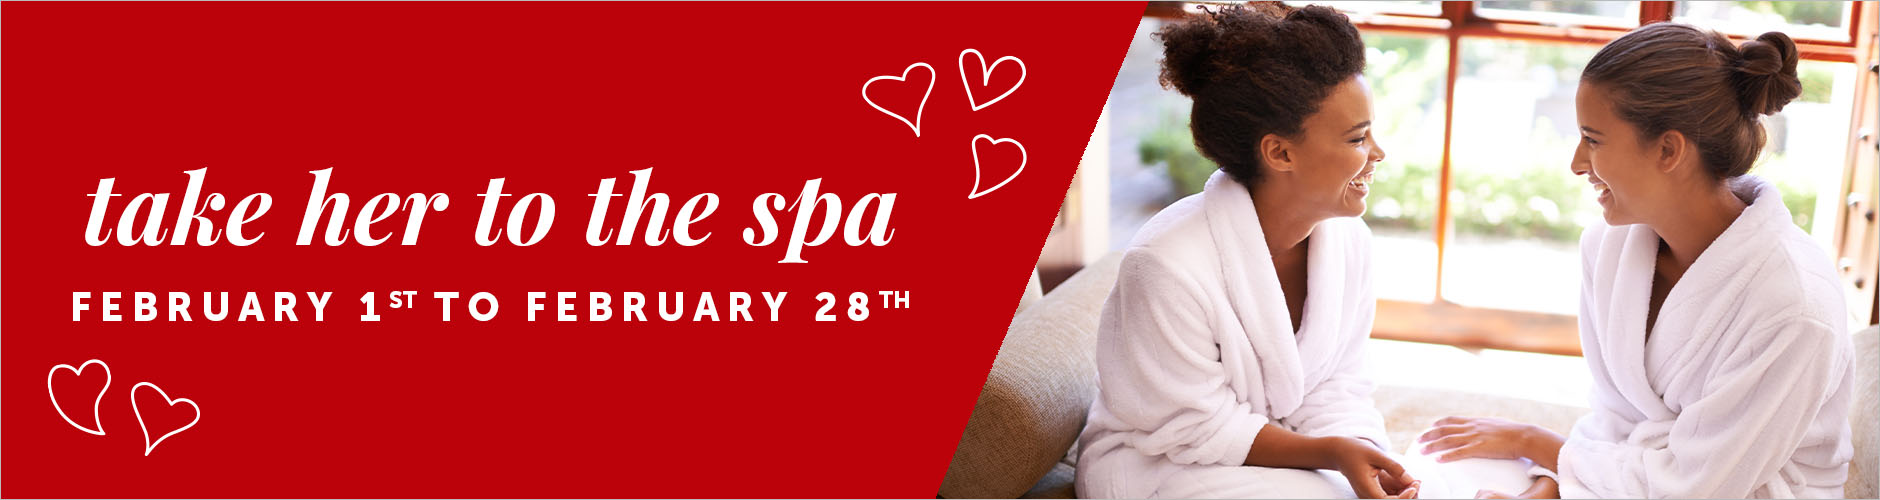 Take Her To The Spa On Valentine's Day